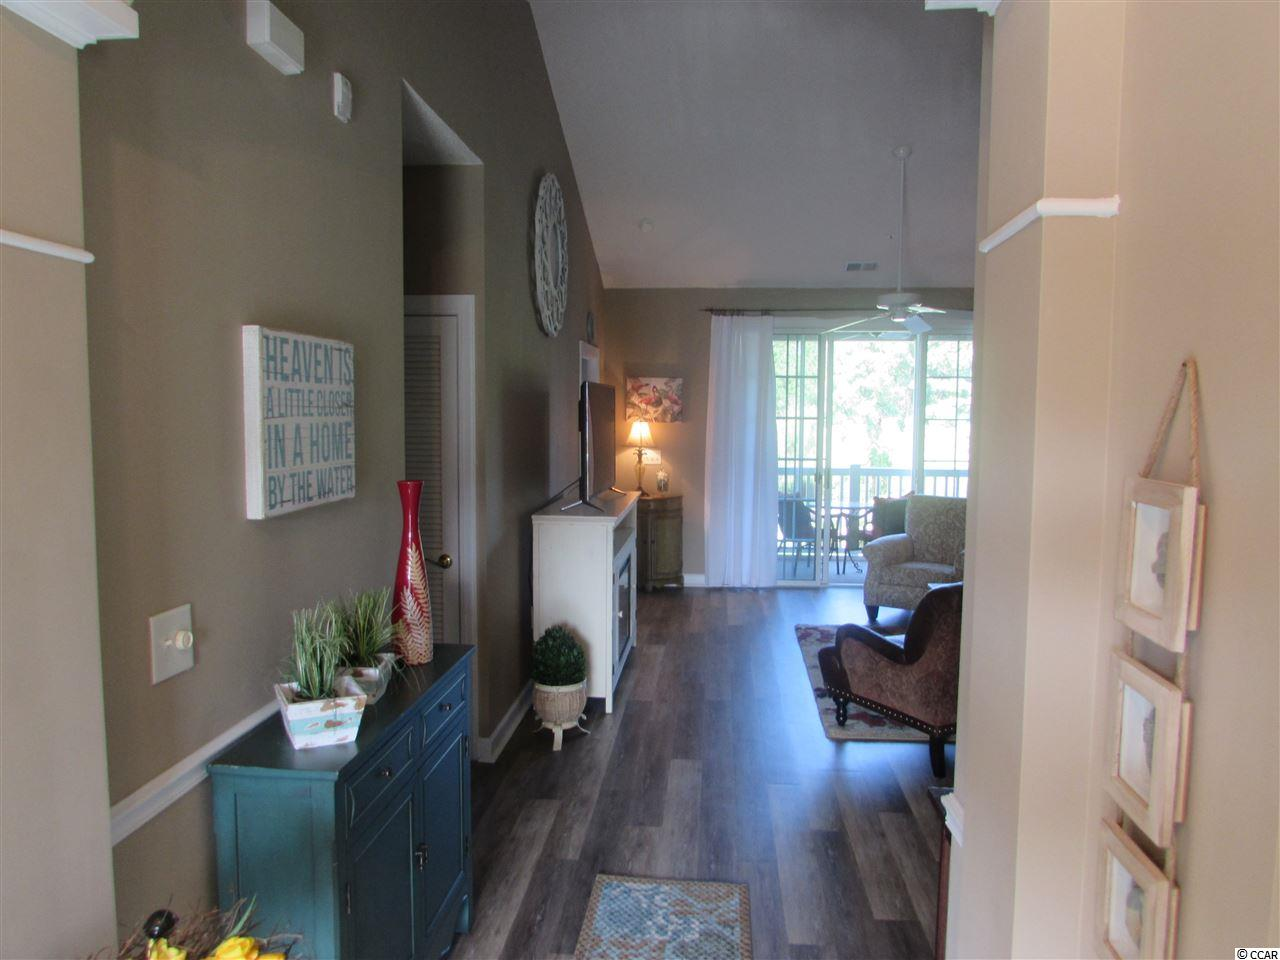 RIVER XING BRFT condo for sale in North Myrtle Beach, SC